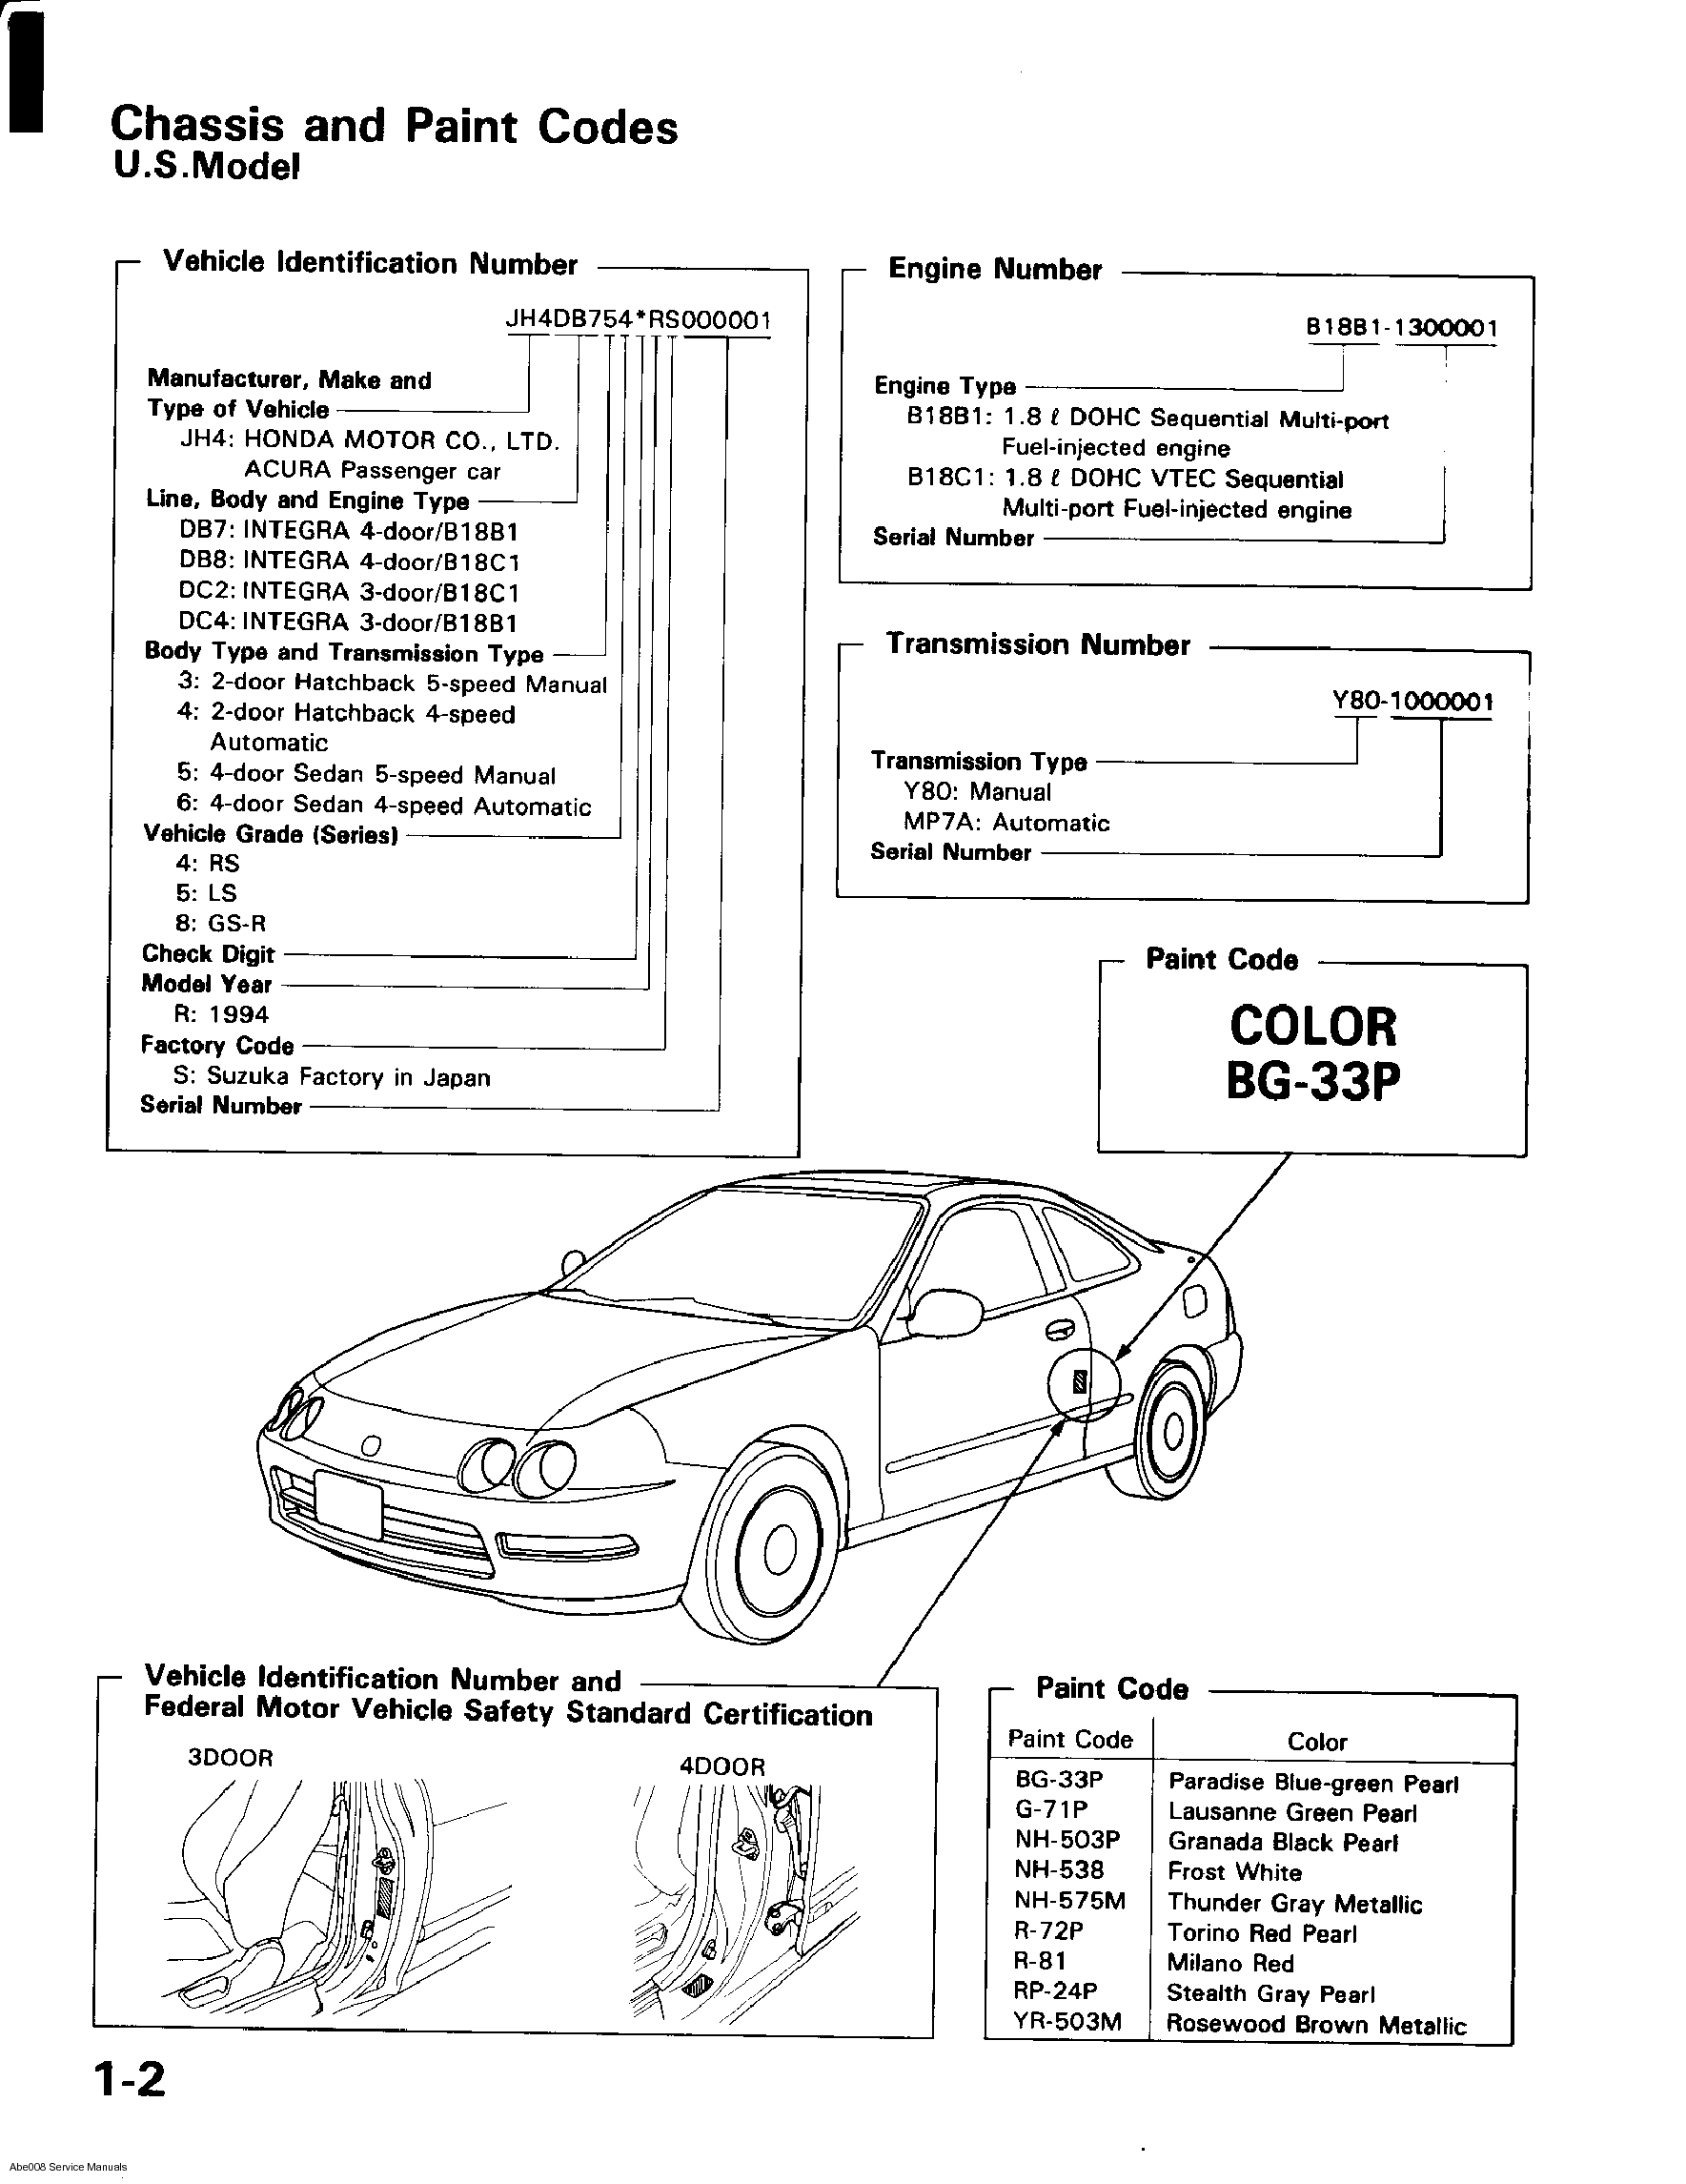 acura integra service manual 1994download free software